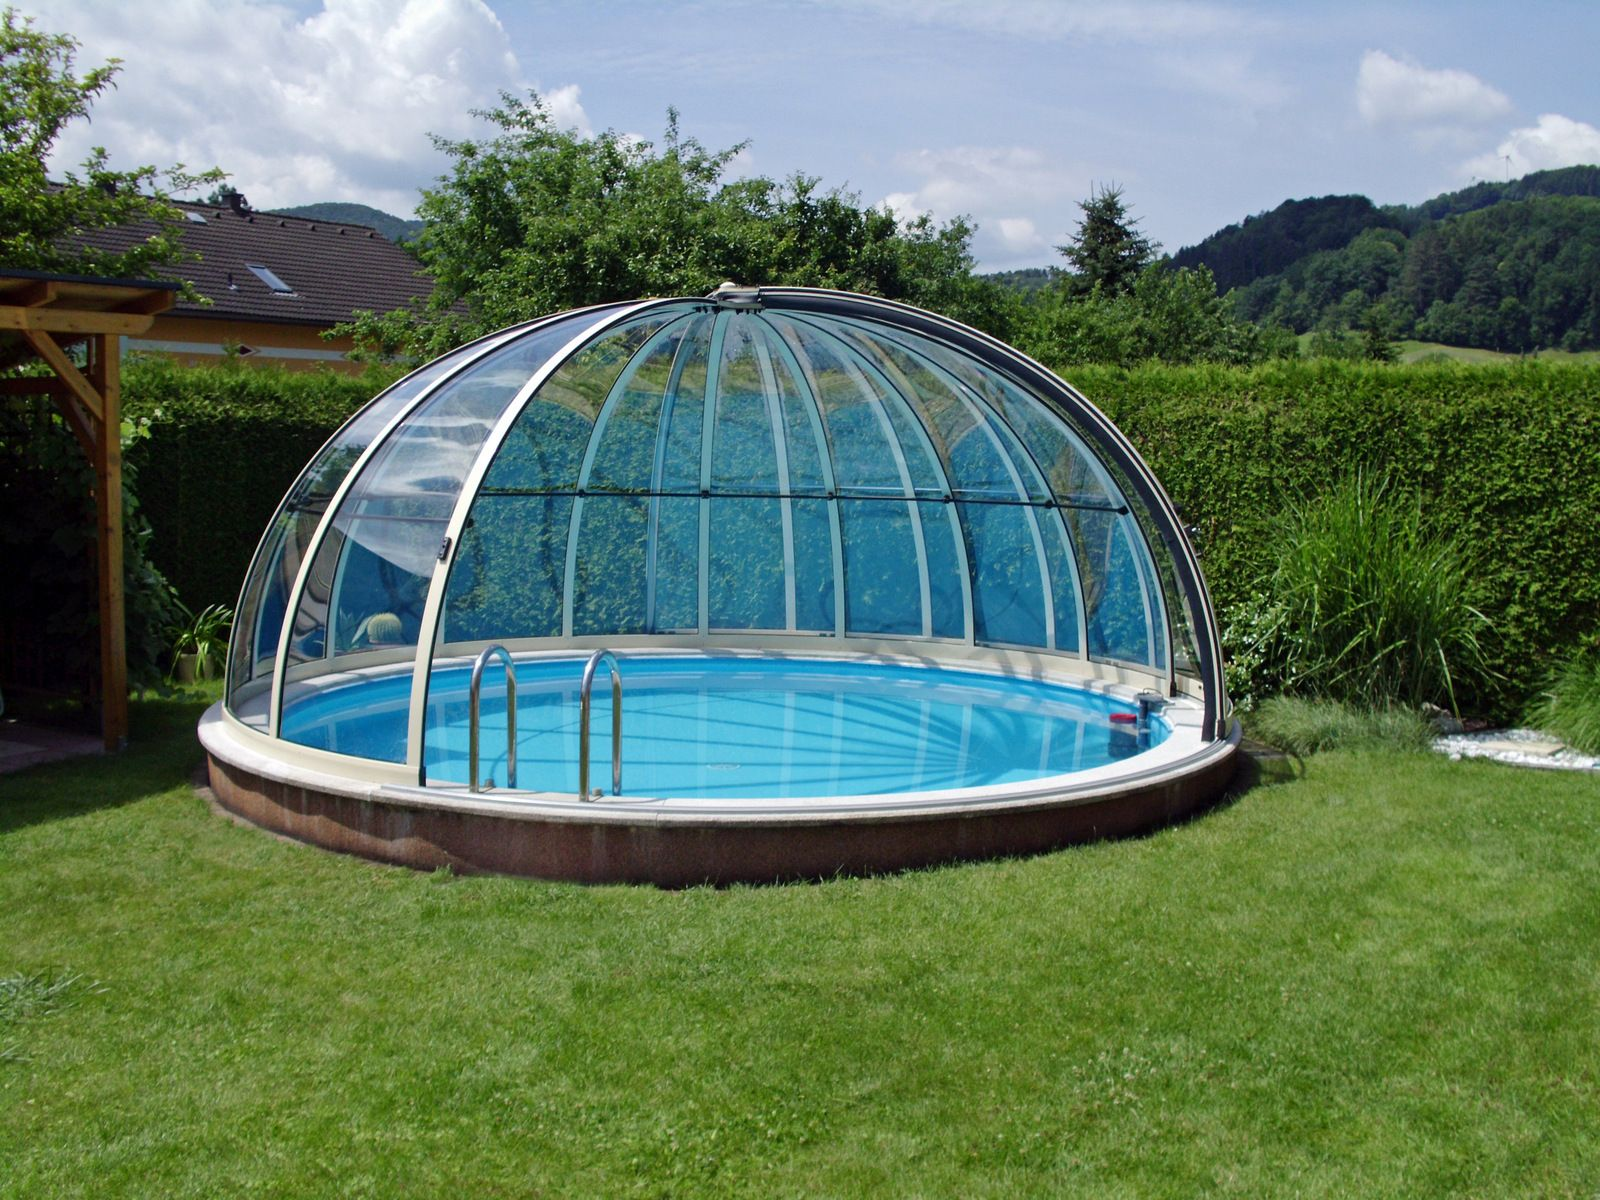 Retractable Swimming Pool Enclosure Orient In The Corner